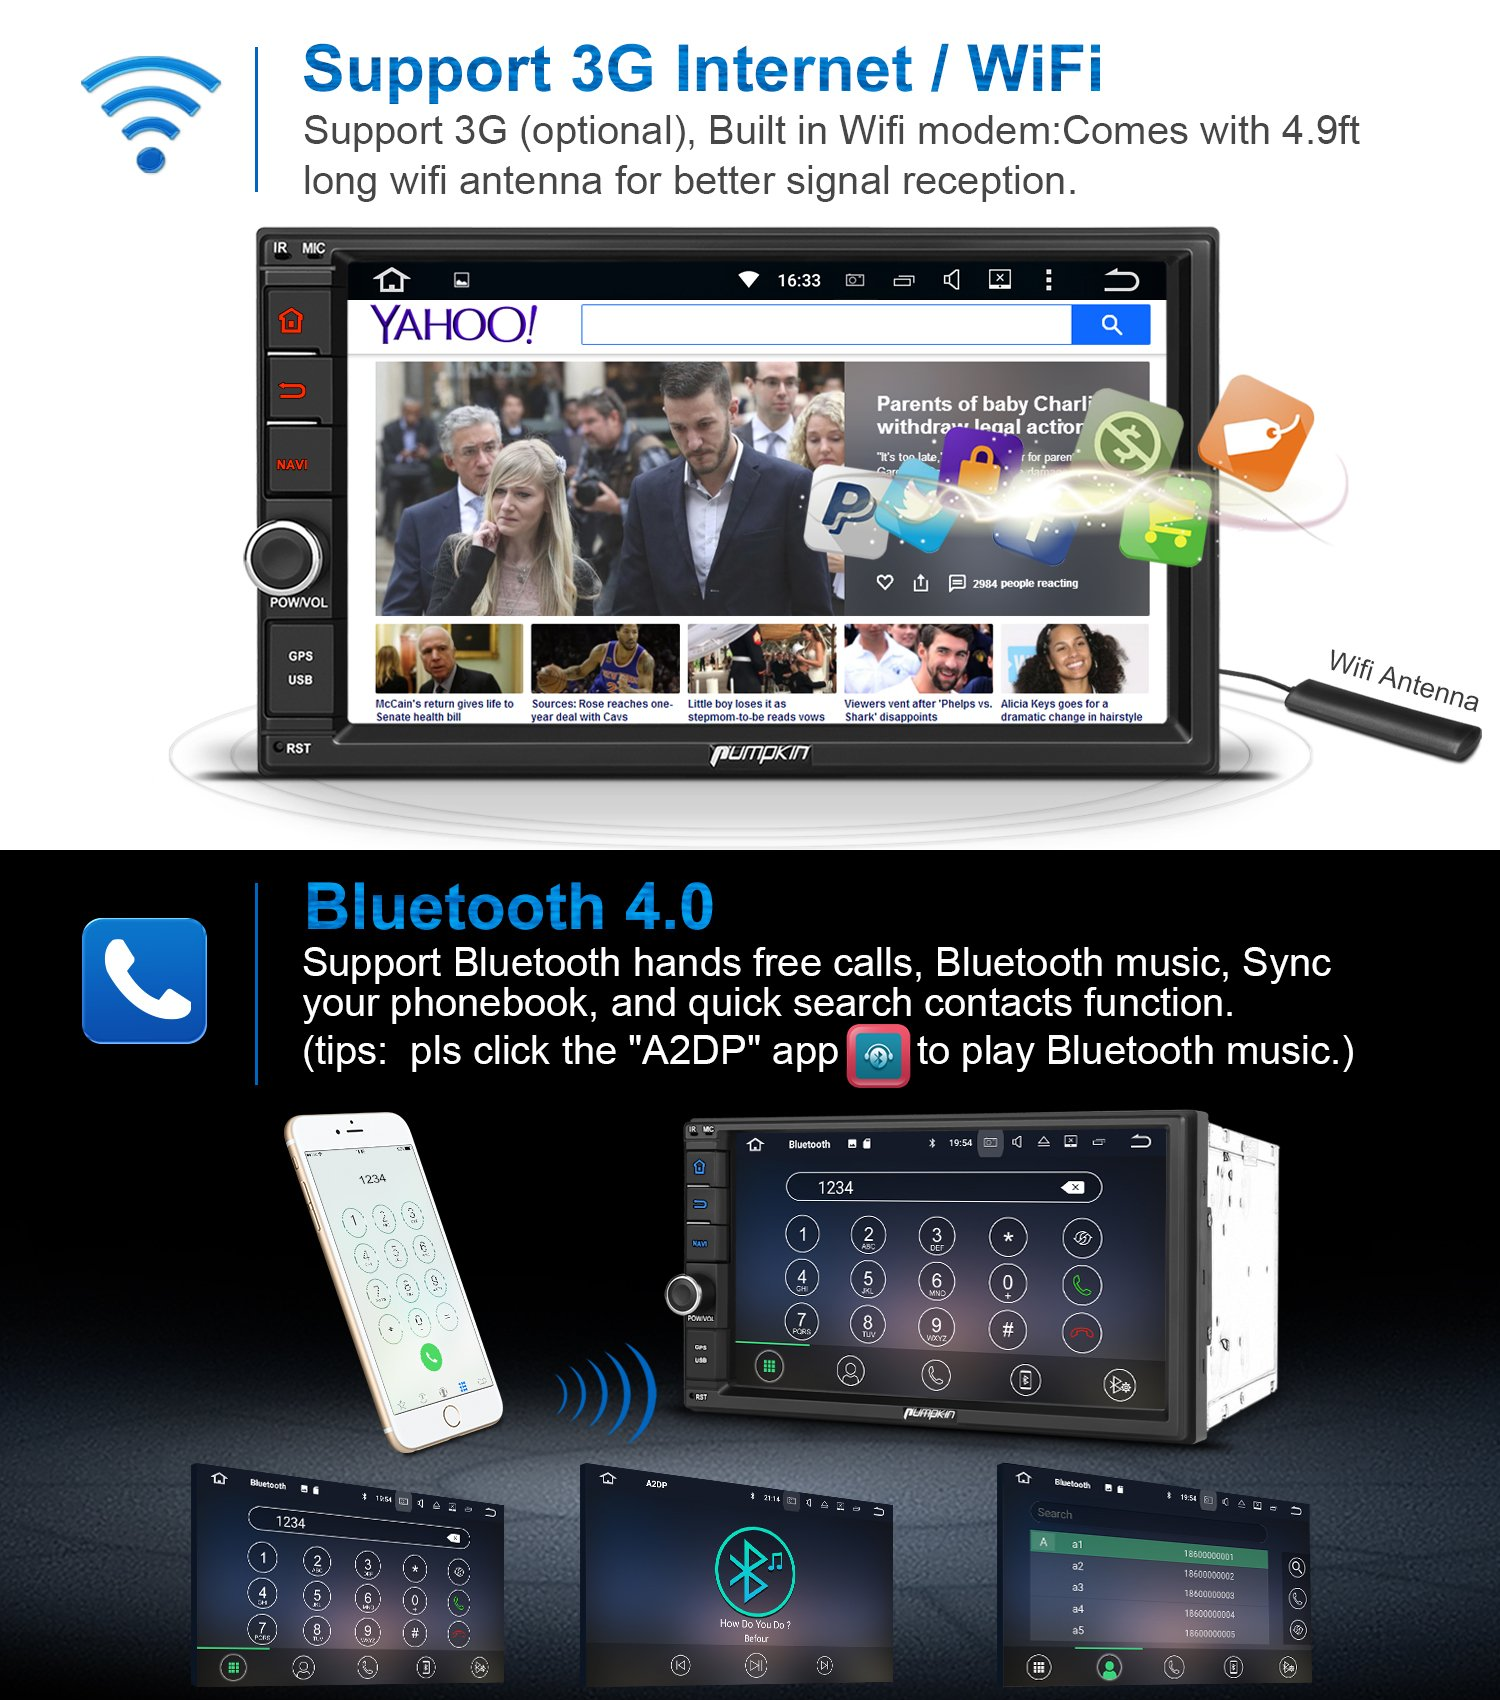 2GB 32GB Android 7.1 Car Stereo - Double Din Bluetooth 4.0 Radio - Support Fast Boot, GPS Navigation, USB/SD, 3G WIFI, Mirror Link, Backup Camera, AV-Out, OBD2, DVR, Subwoofer by PUMPKIN (Image #5)